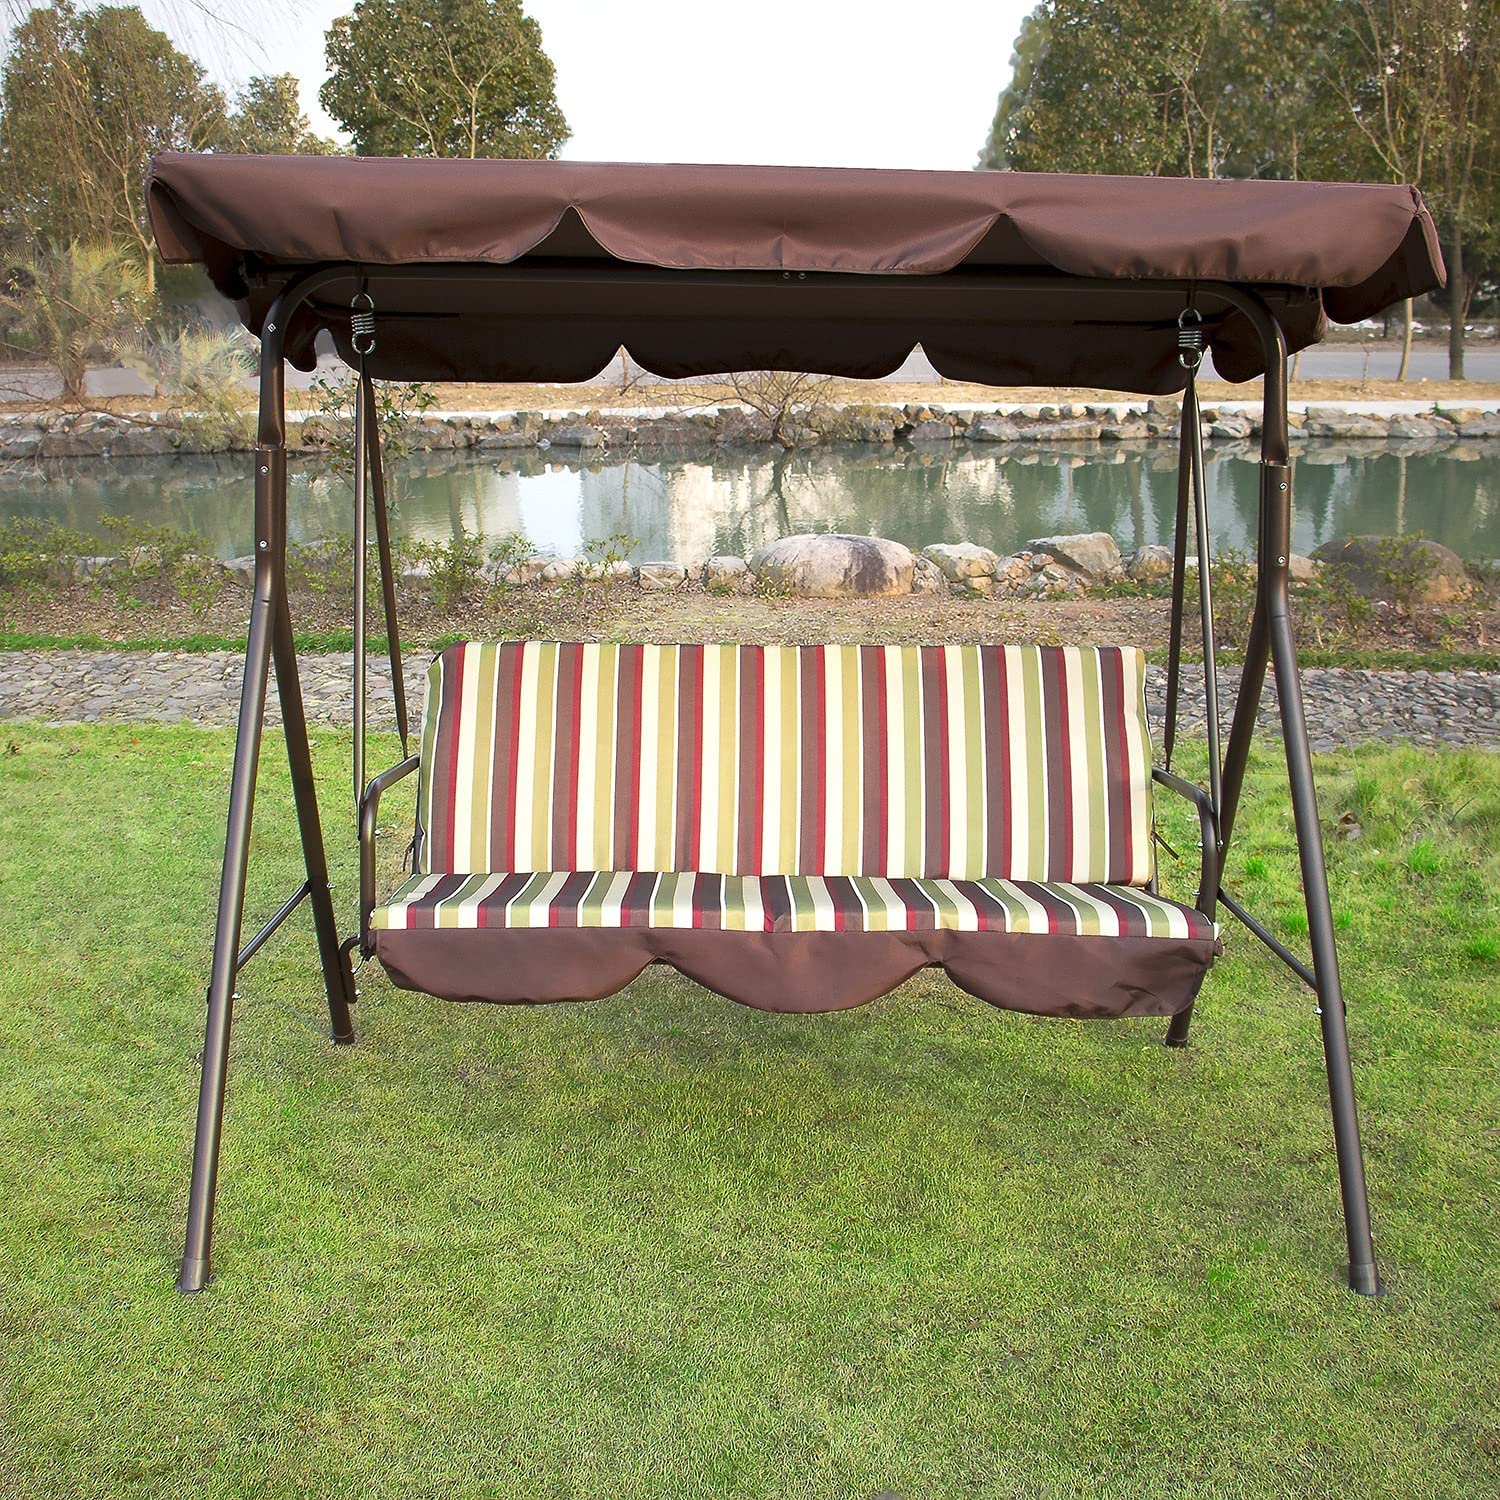 LCSA Outdoor 3 Person Canopy OFFicial mail order Swing Chair Limited time trial price Patio Y Backyard Awning